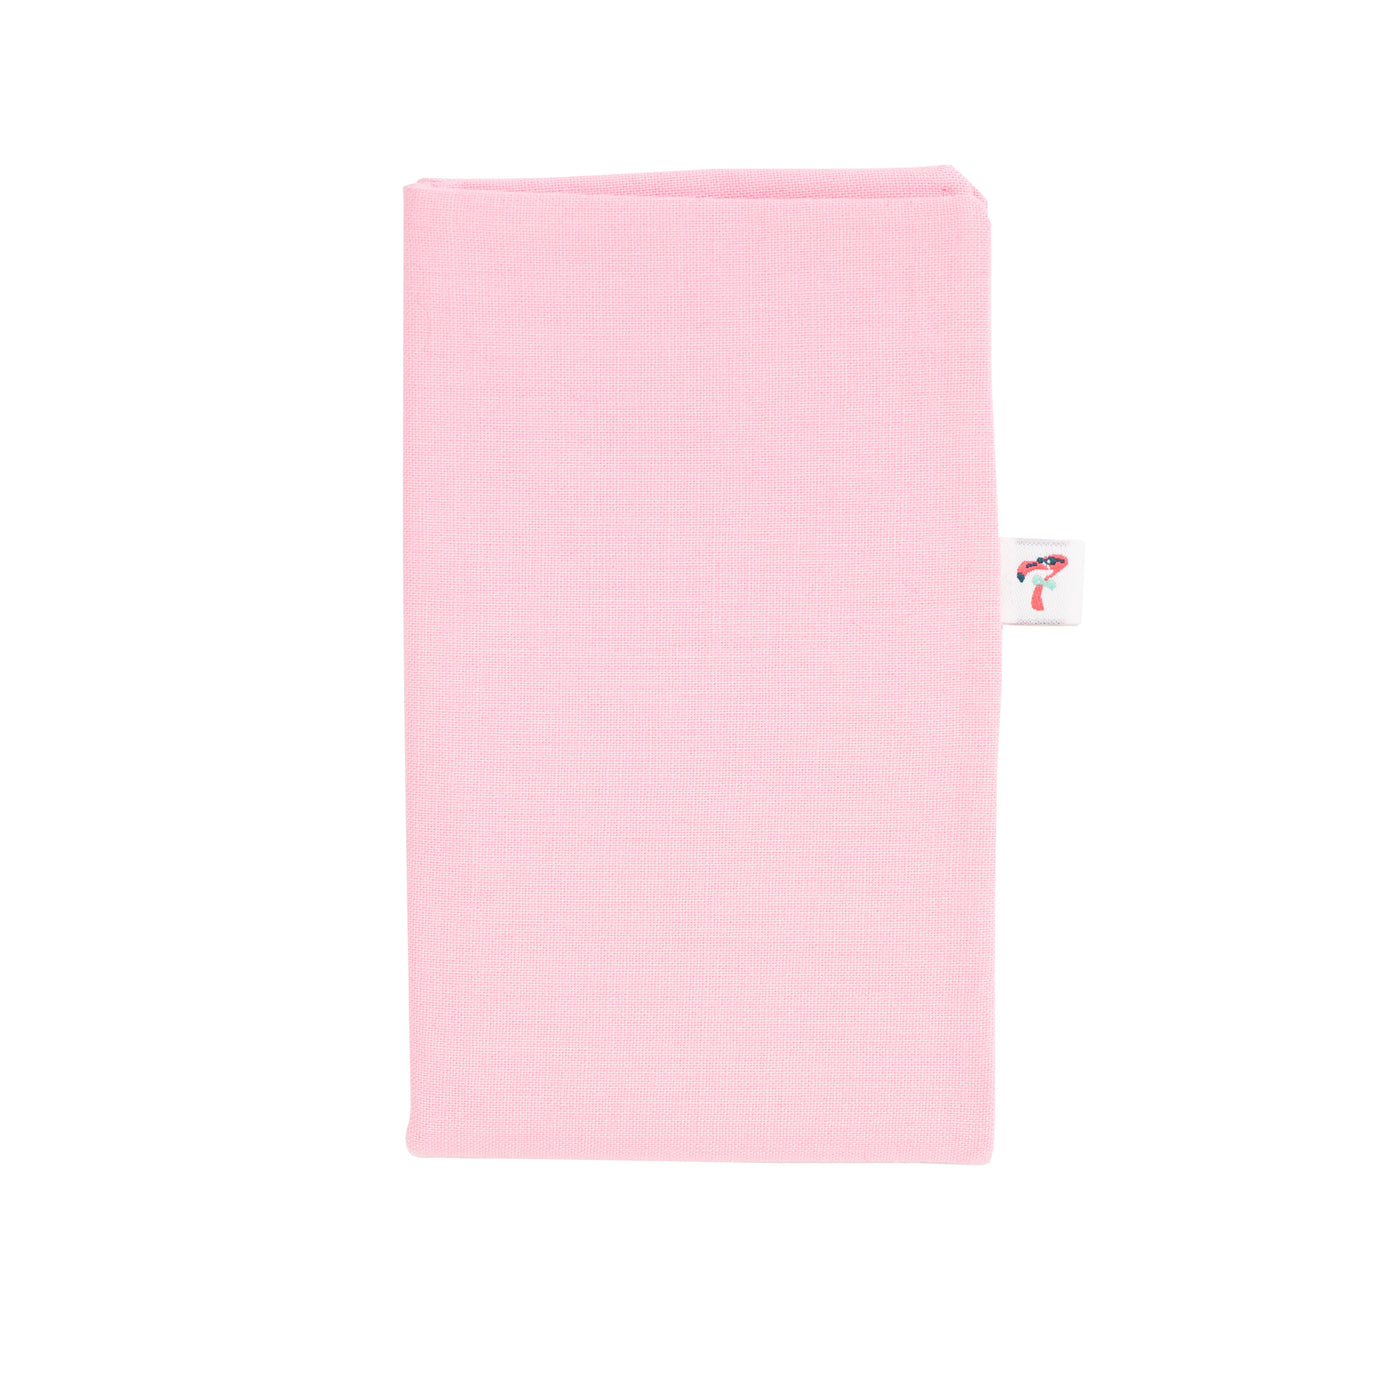 Pocket Square - Pink